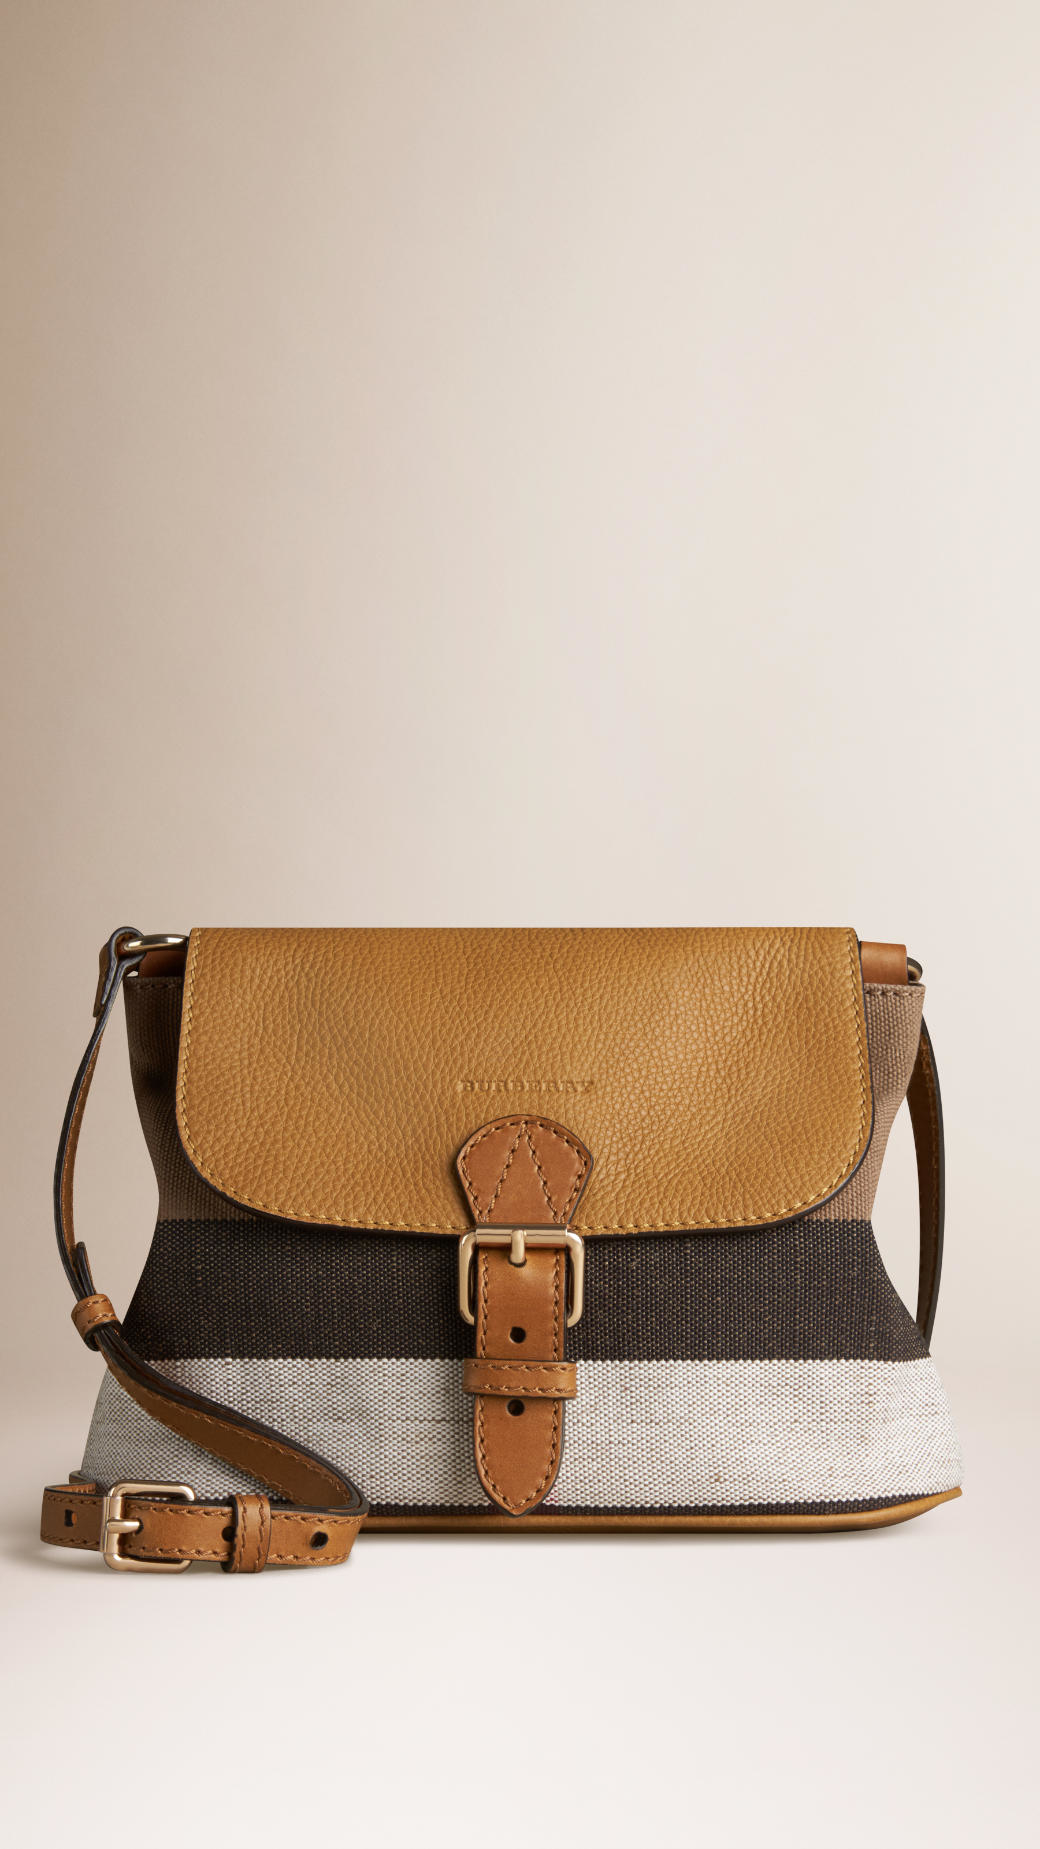 2cc39a00e577 Burberry Small Canvas Check And Leather Crossbody Bag in Brown - Lyst